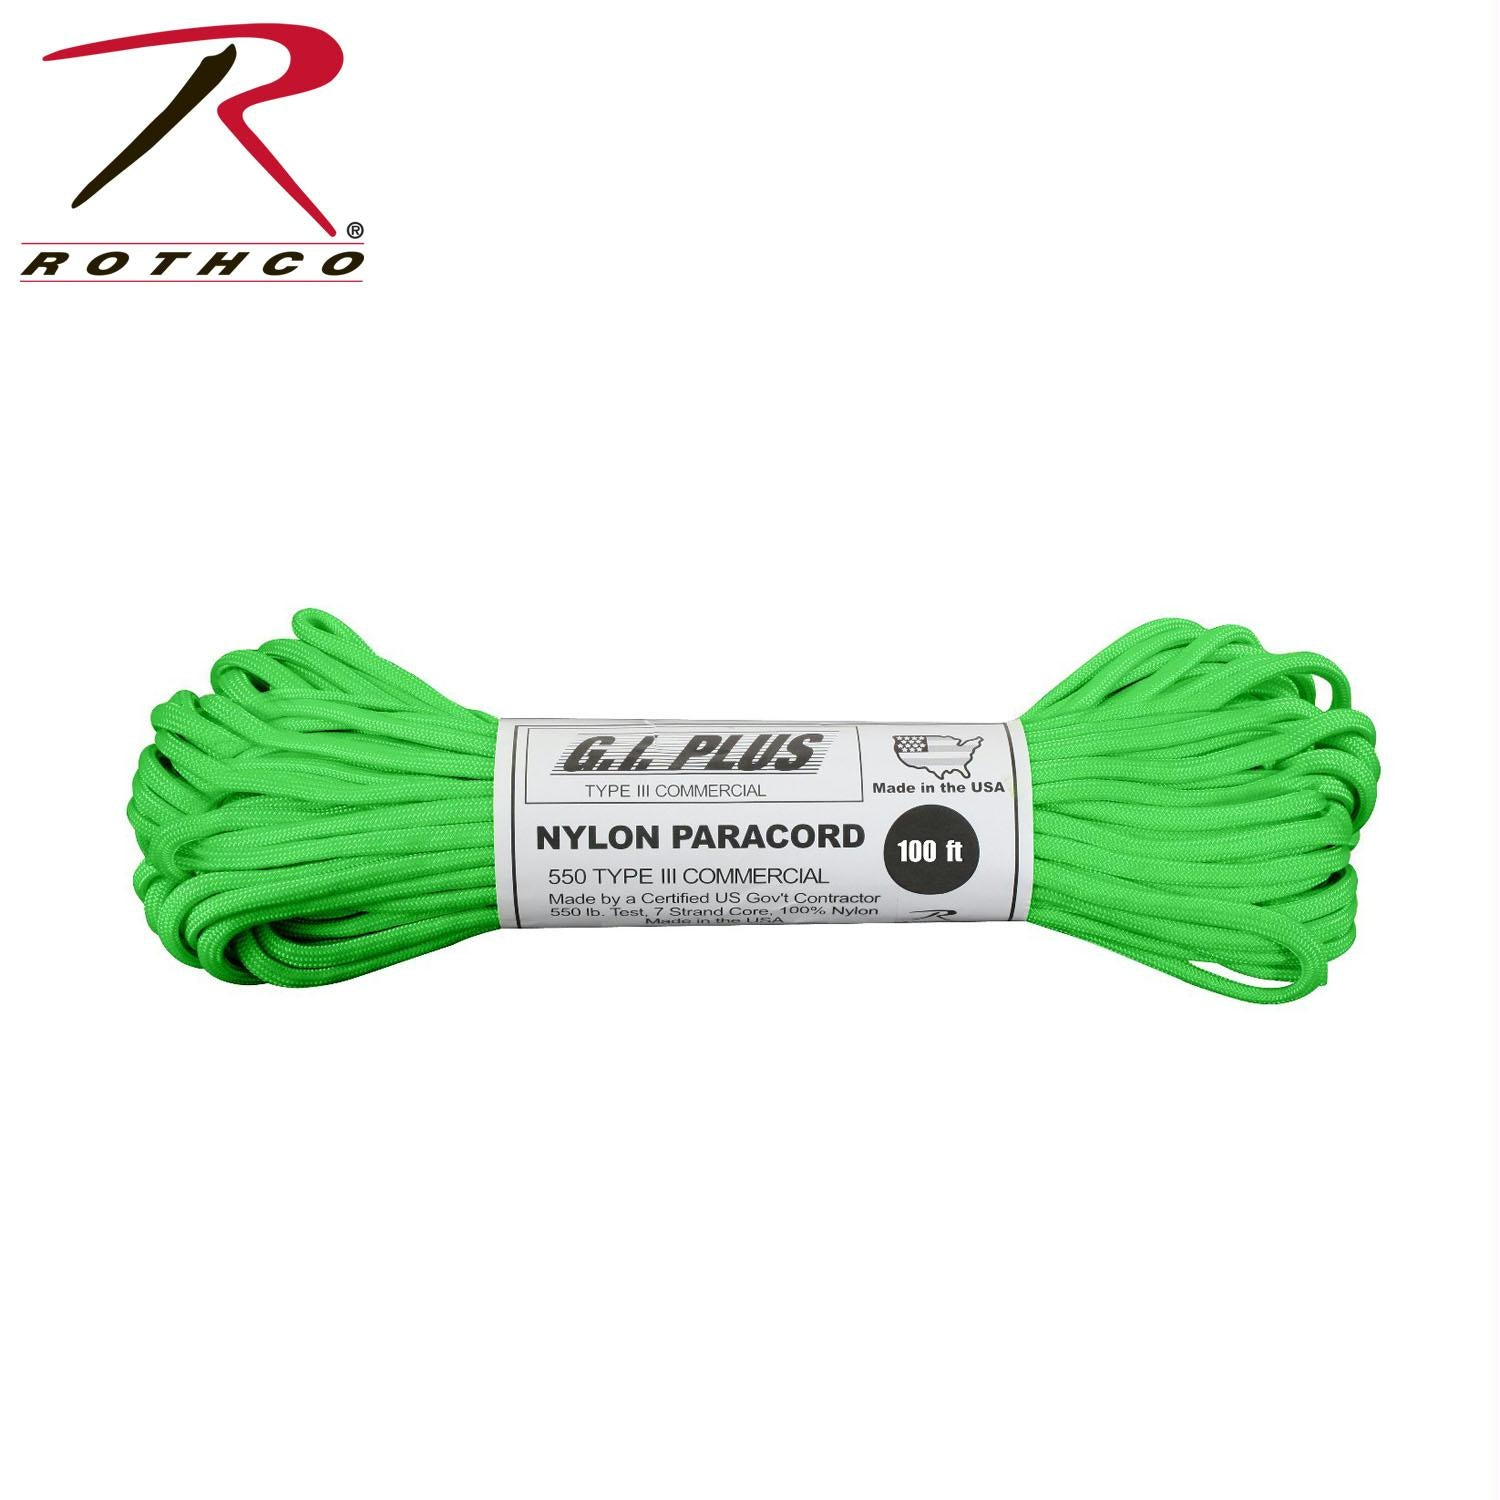 Rothco Nylon Paracord Type III 550 LB 100FT - Safety Green